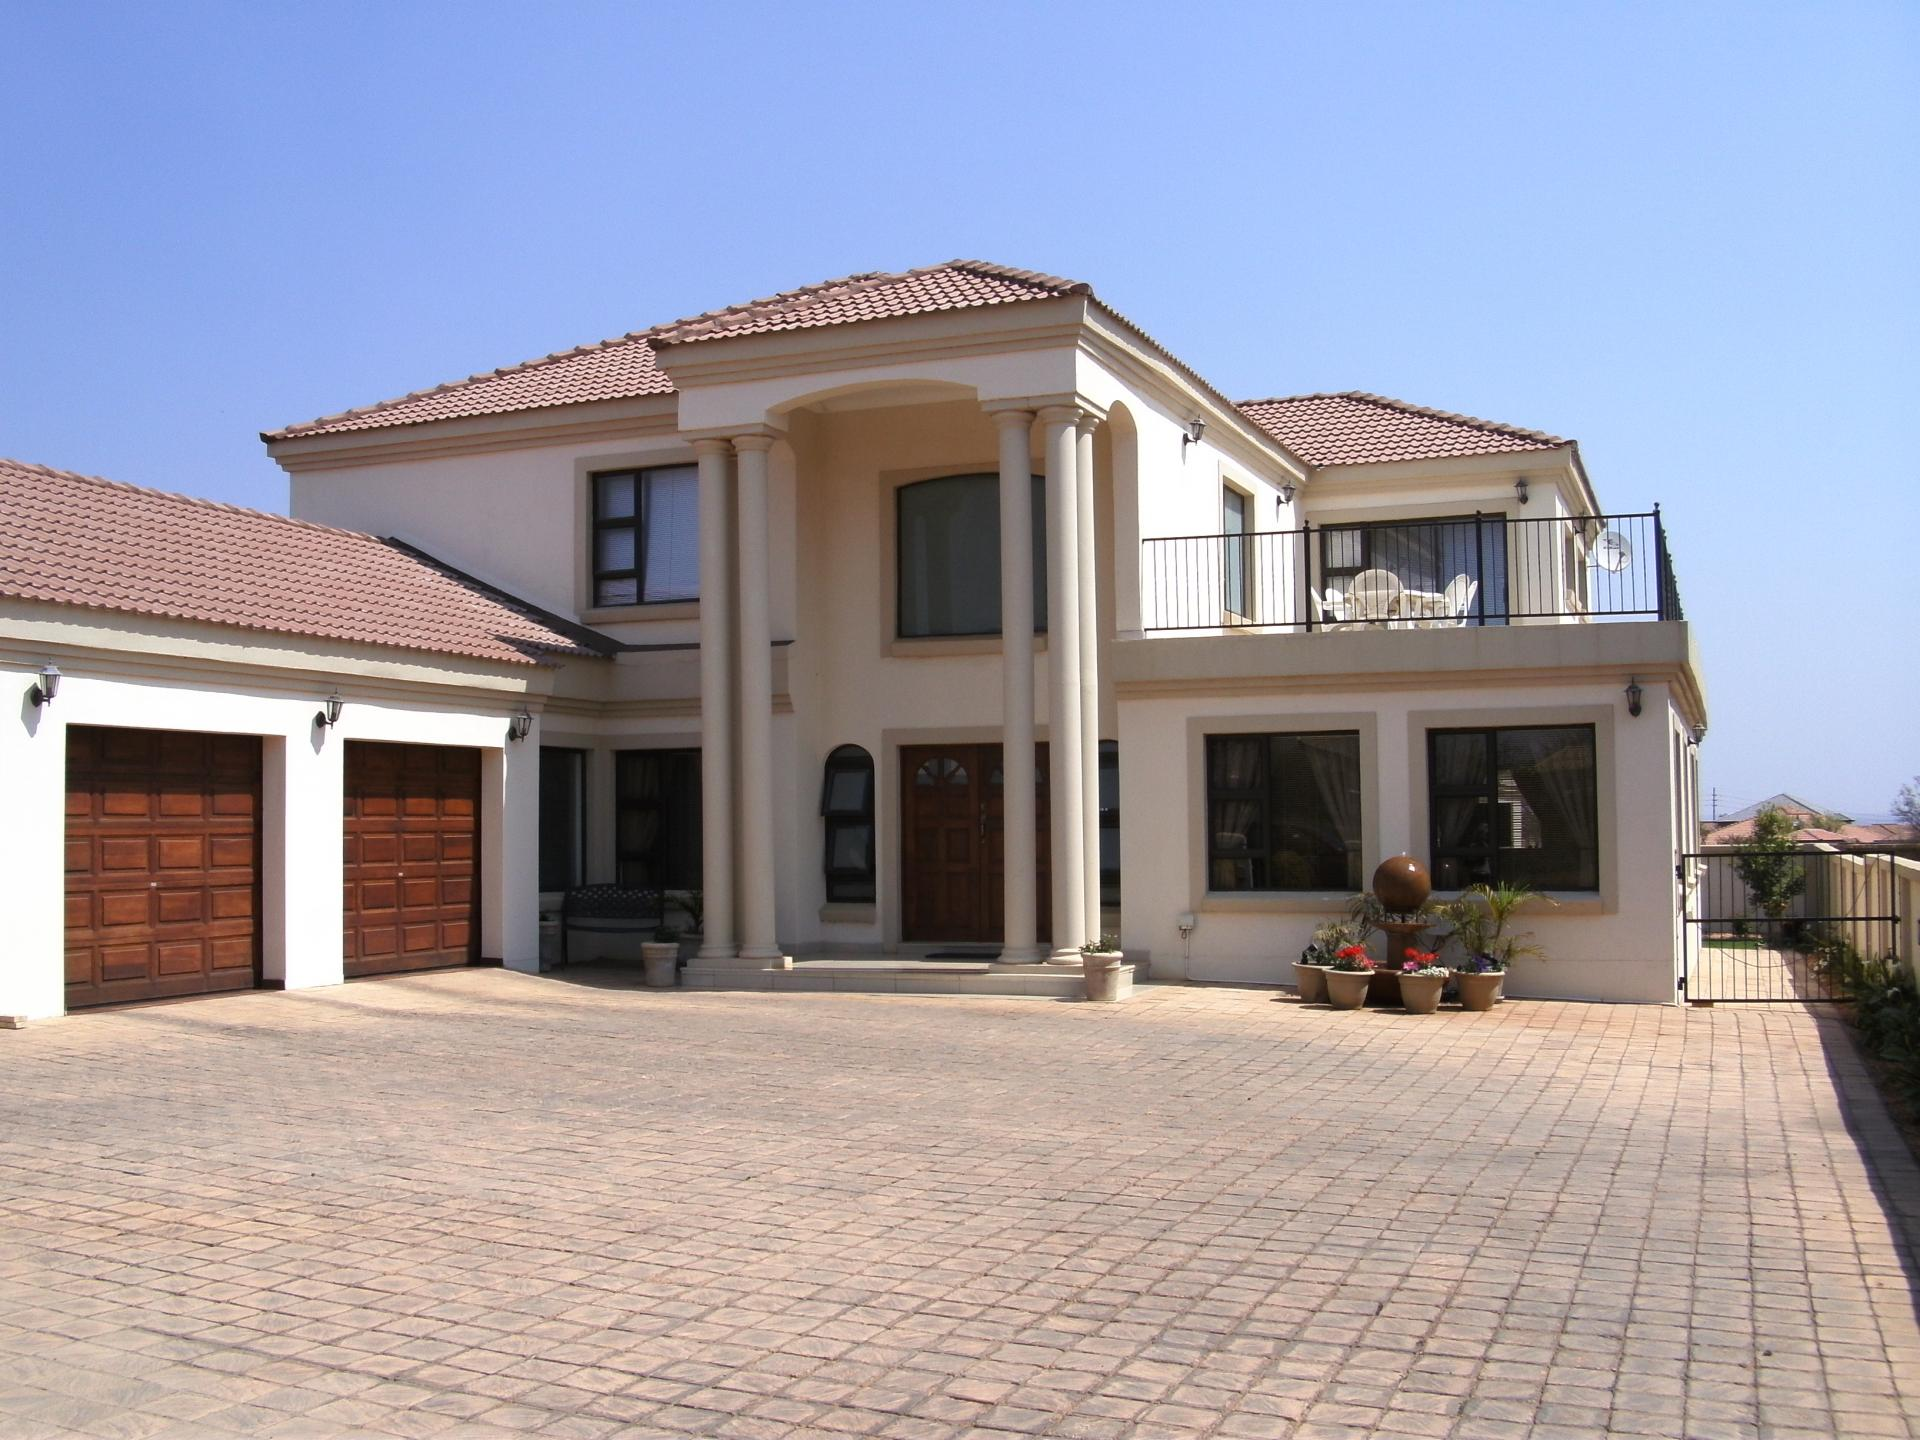 Pictures Of Double Story Houses In South Africa Amazing Stories